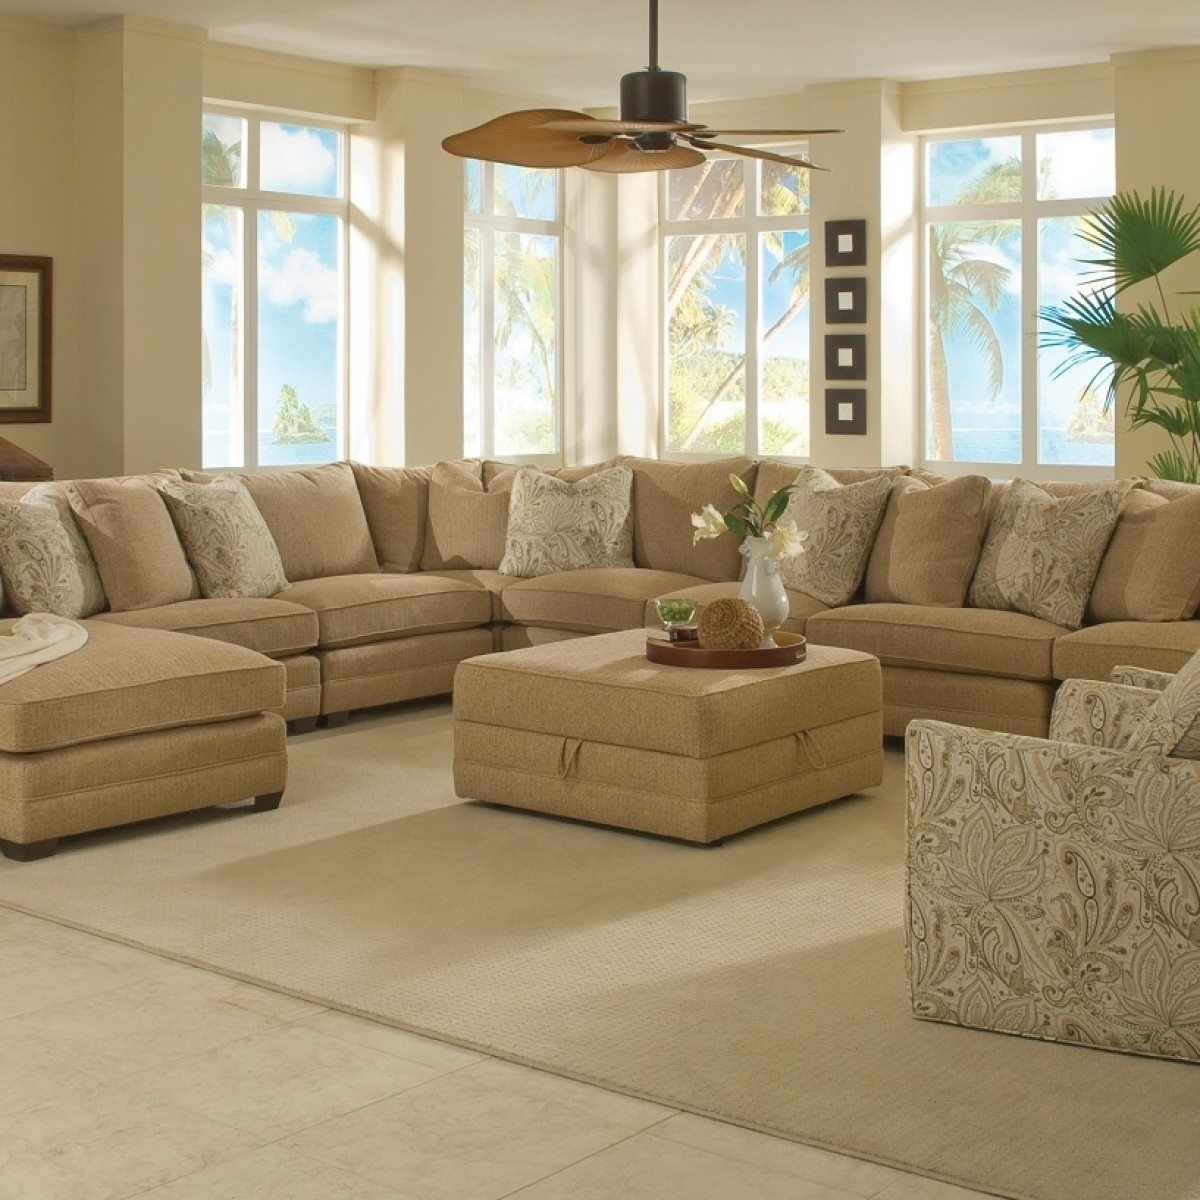 2018 Sectional Sofa Design: Large Sofa Sectionals Chaise Bed Extra Pertaining To Extra Large Sectional Sofas With Chaise (View 1 of 15)